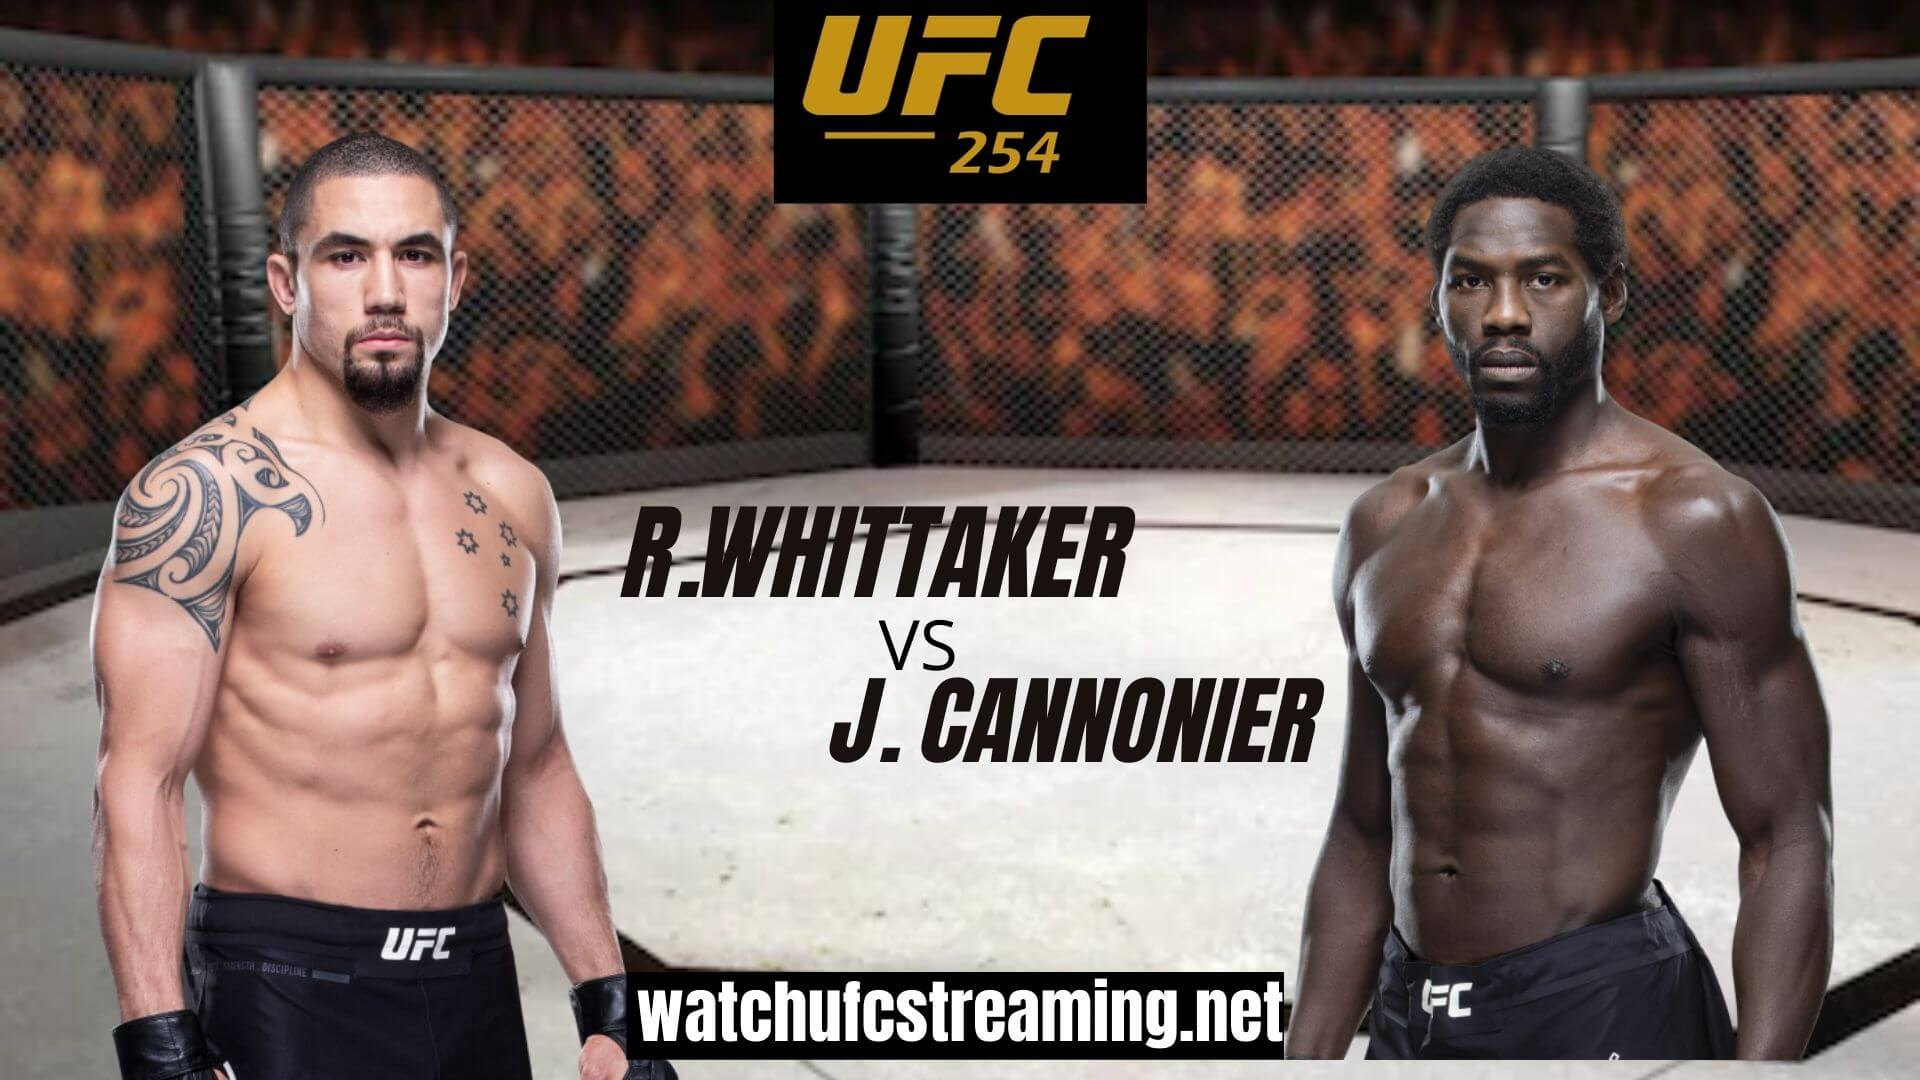 R. Whittaker Vs J. Cannonier Highlights 2020 | UFC 254